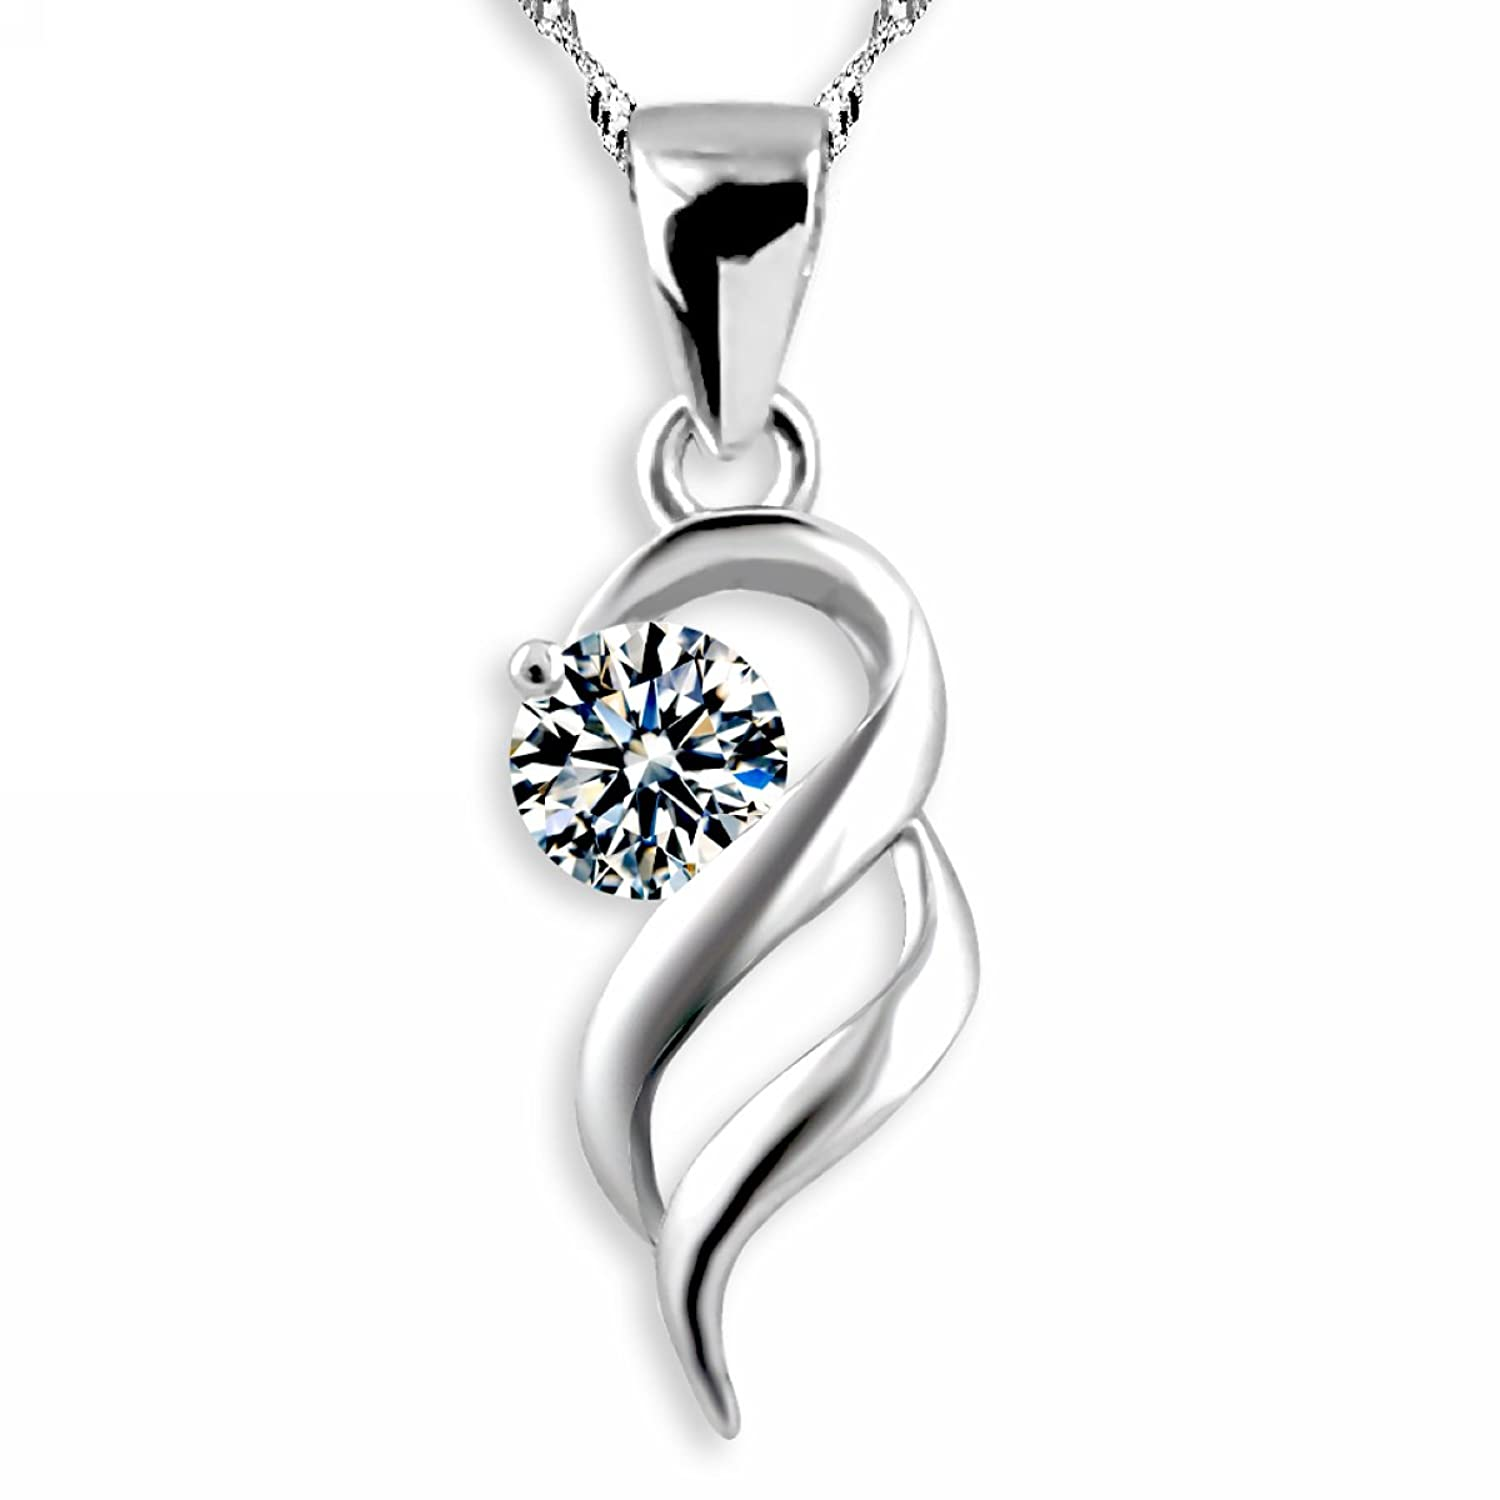 Amazon.com: Holiday sale deep discount 20% off Merdia 925 Sterling ...